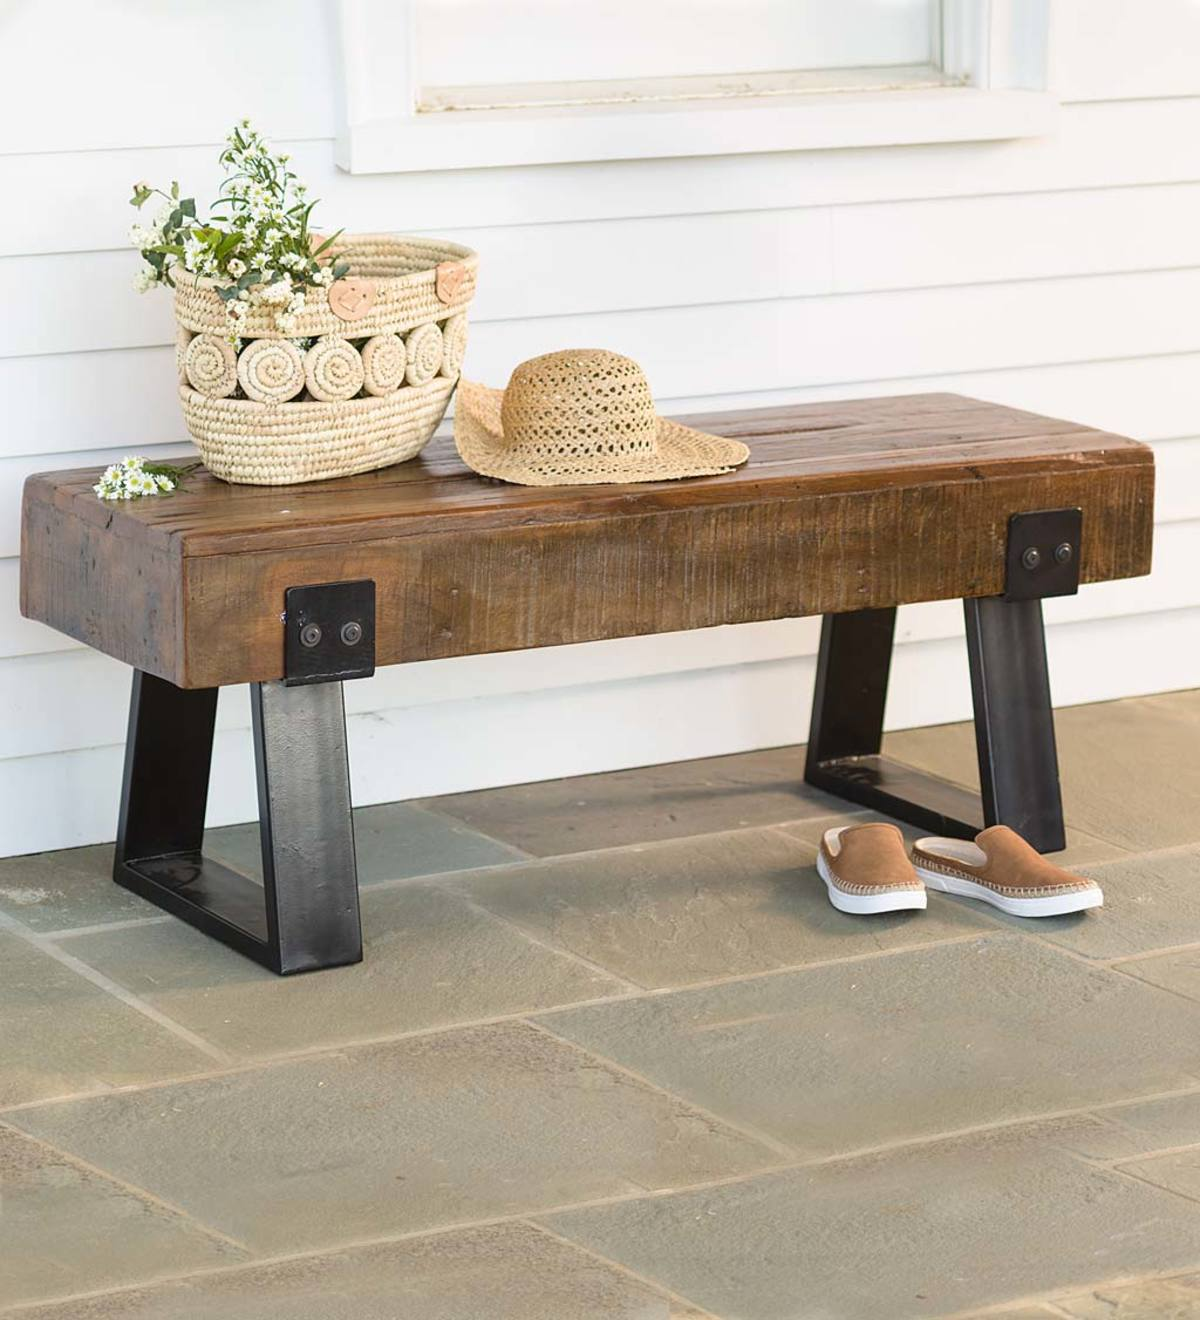 Sensational Richland Indoor Outdoor Reclaimed Wood Bench Vivaterra Pabps2019 Chair Design Images Pabps2019Com